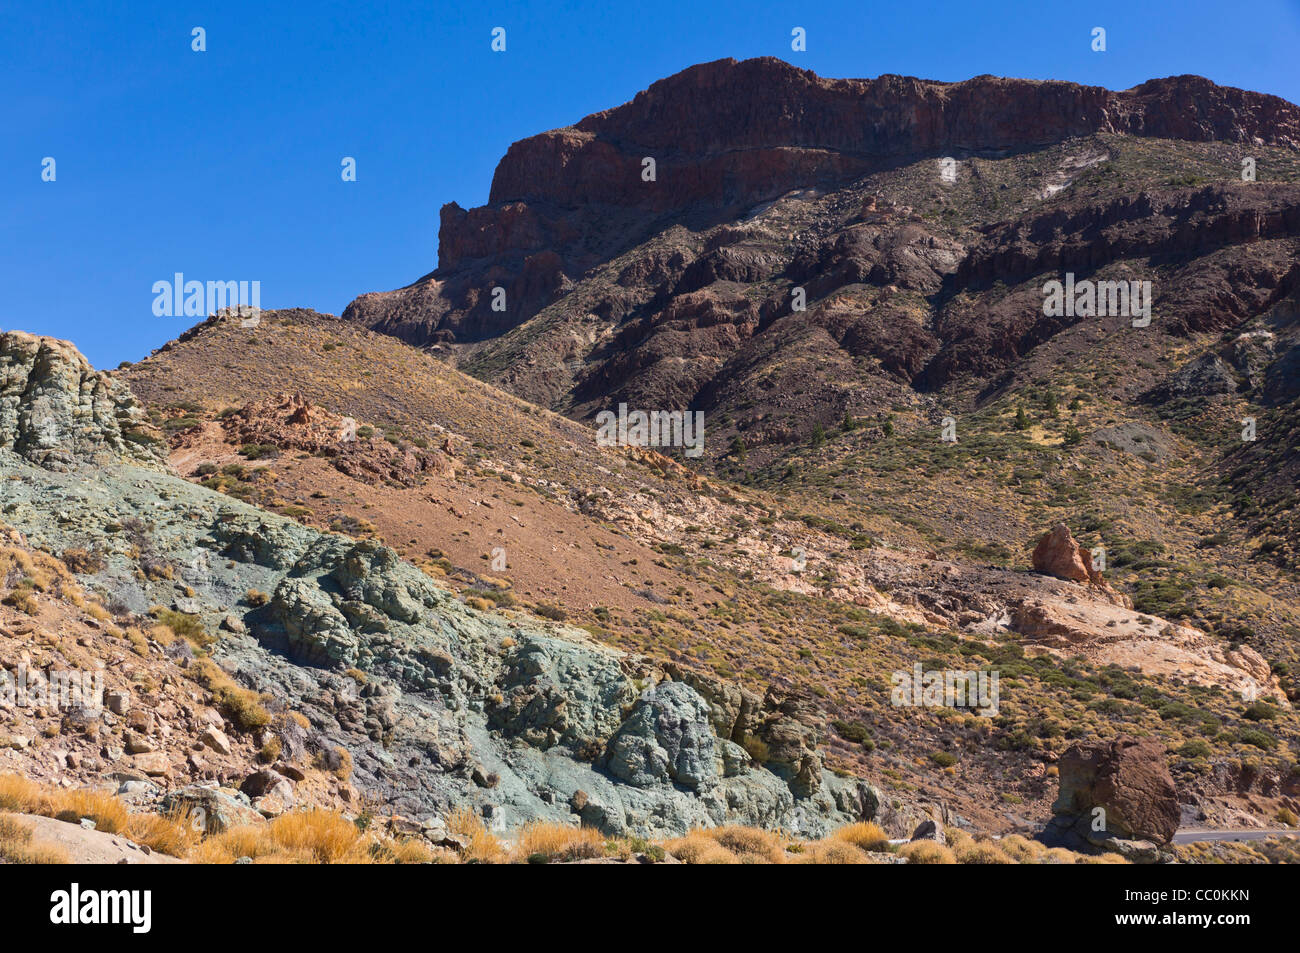 Los Azulejos - hydrothermal alteration near the Roques de Garcia, Mount Teide, Tenerife showing blue-green colours - Stock Image